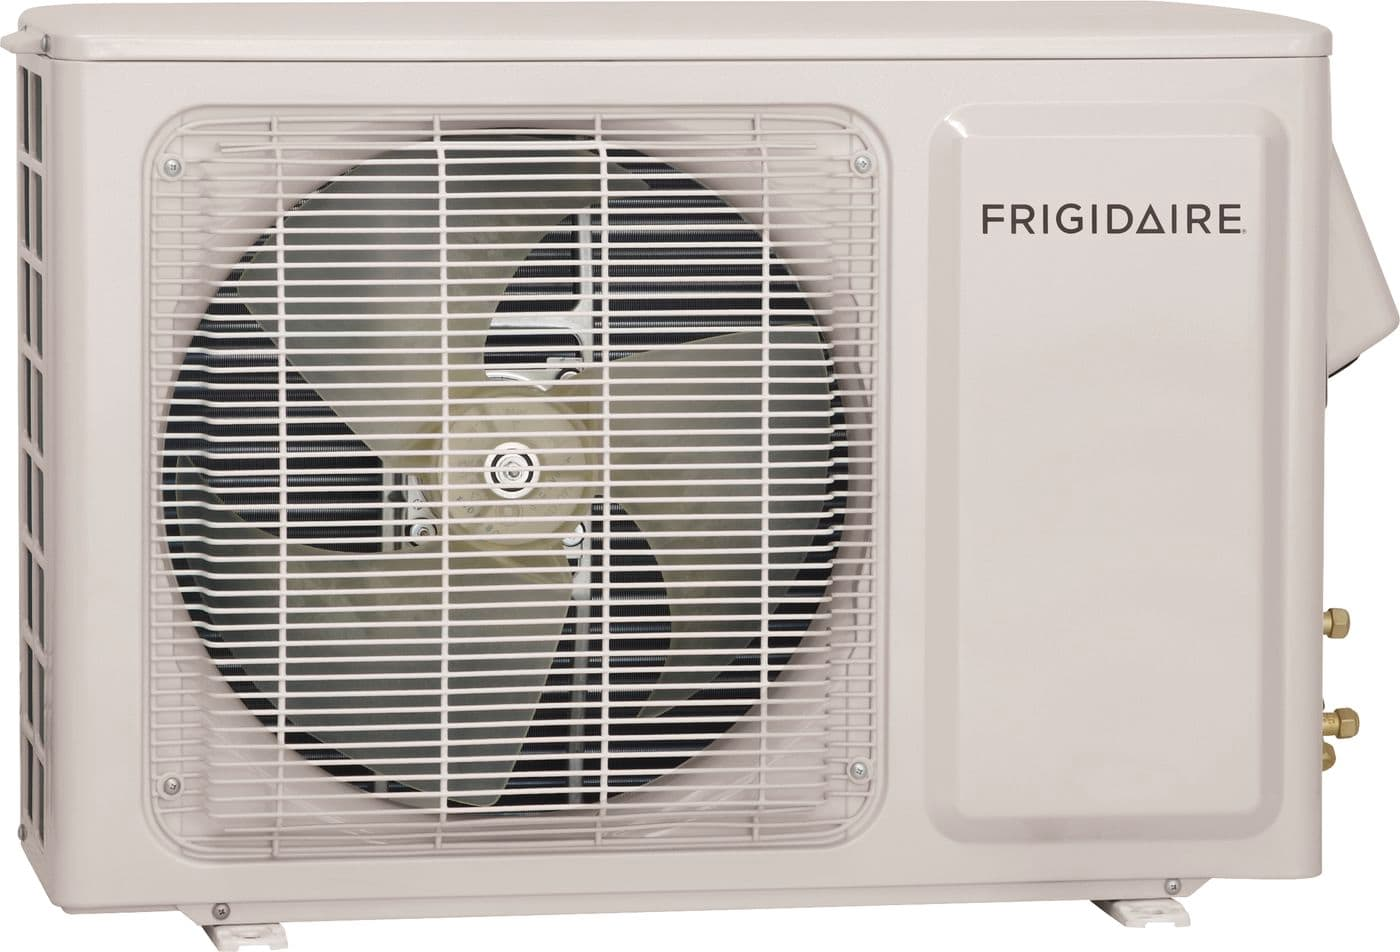 Model: FFHP093SS2 | Frigidaire Ductless Split Air Conditioner with Heat Pump 9,000 BTU 230V